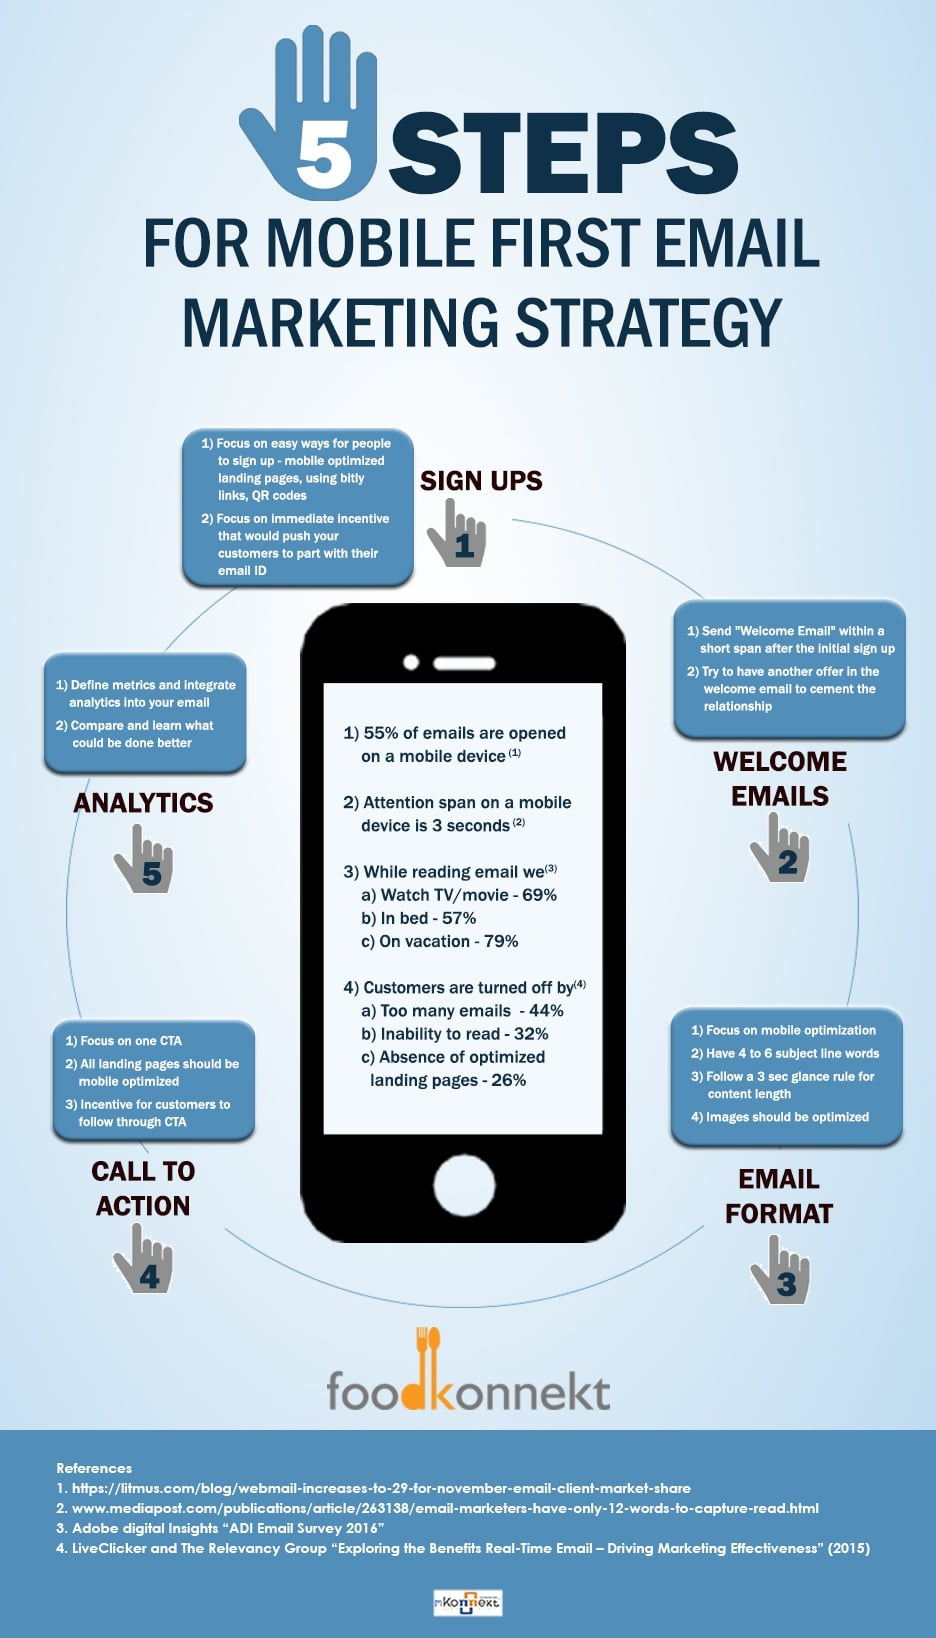 Mobile First Email Marketing strategy